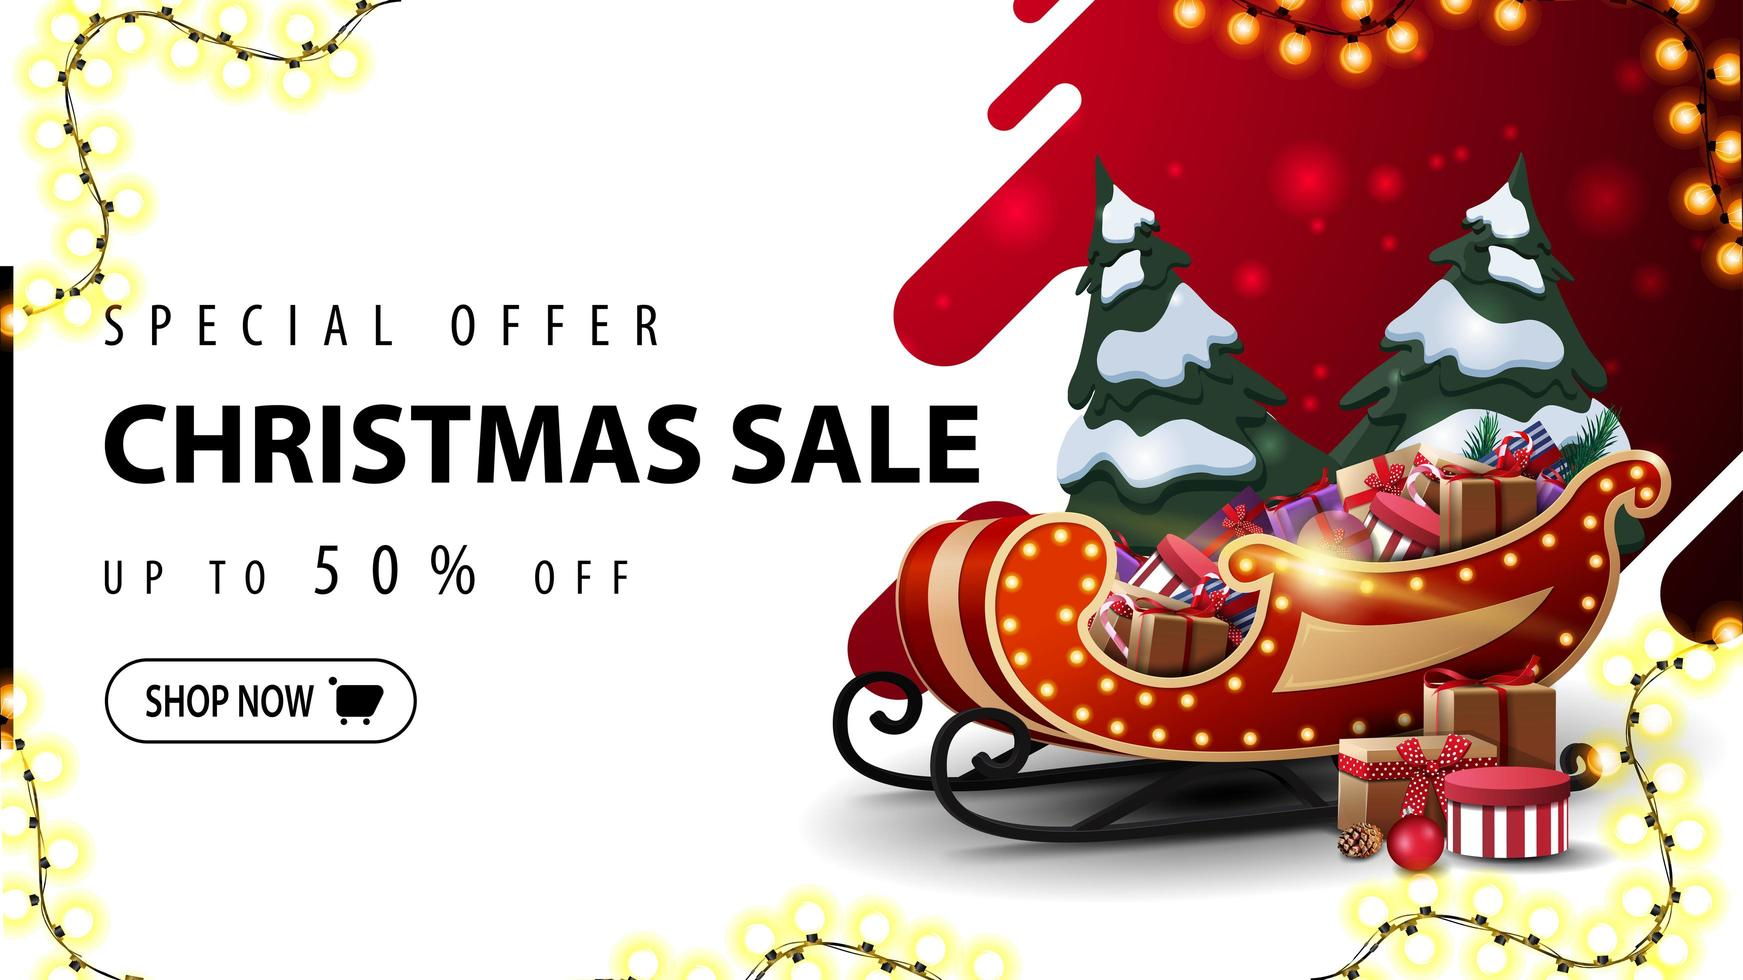 Special offer, Christmas sale, up to 50 off, red and white discount web banner with liquid abstract shape on background, garland frame and Santa Sleigh with pile of presents vector